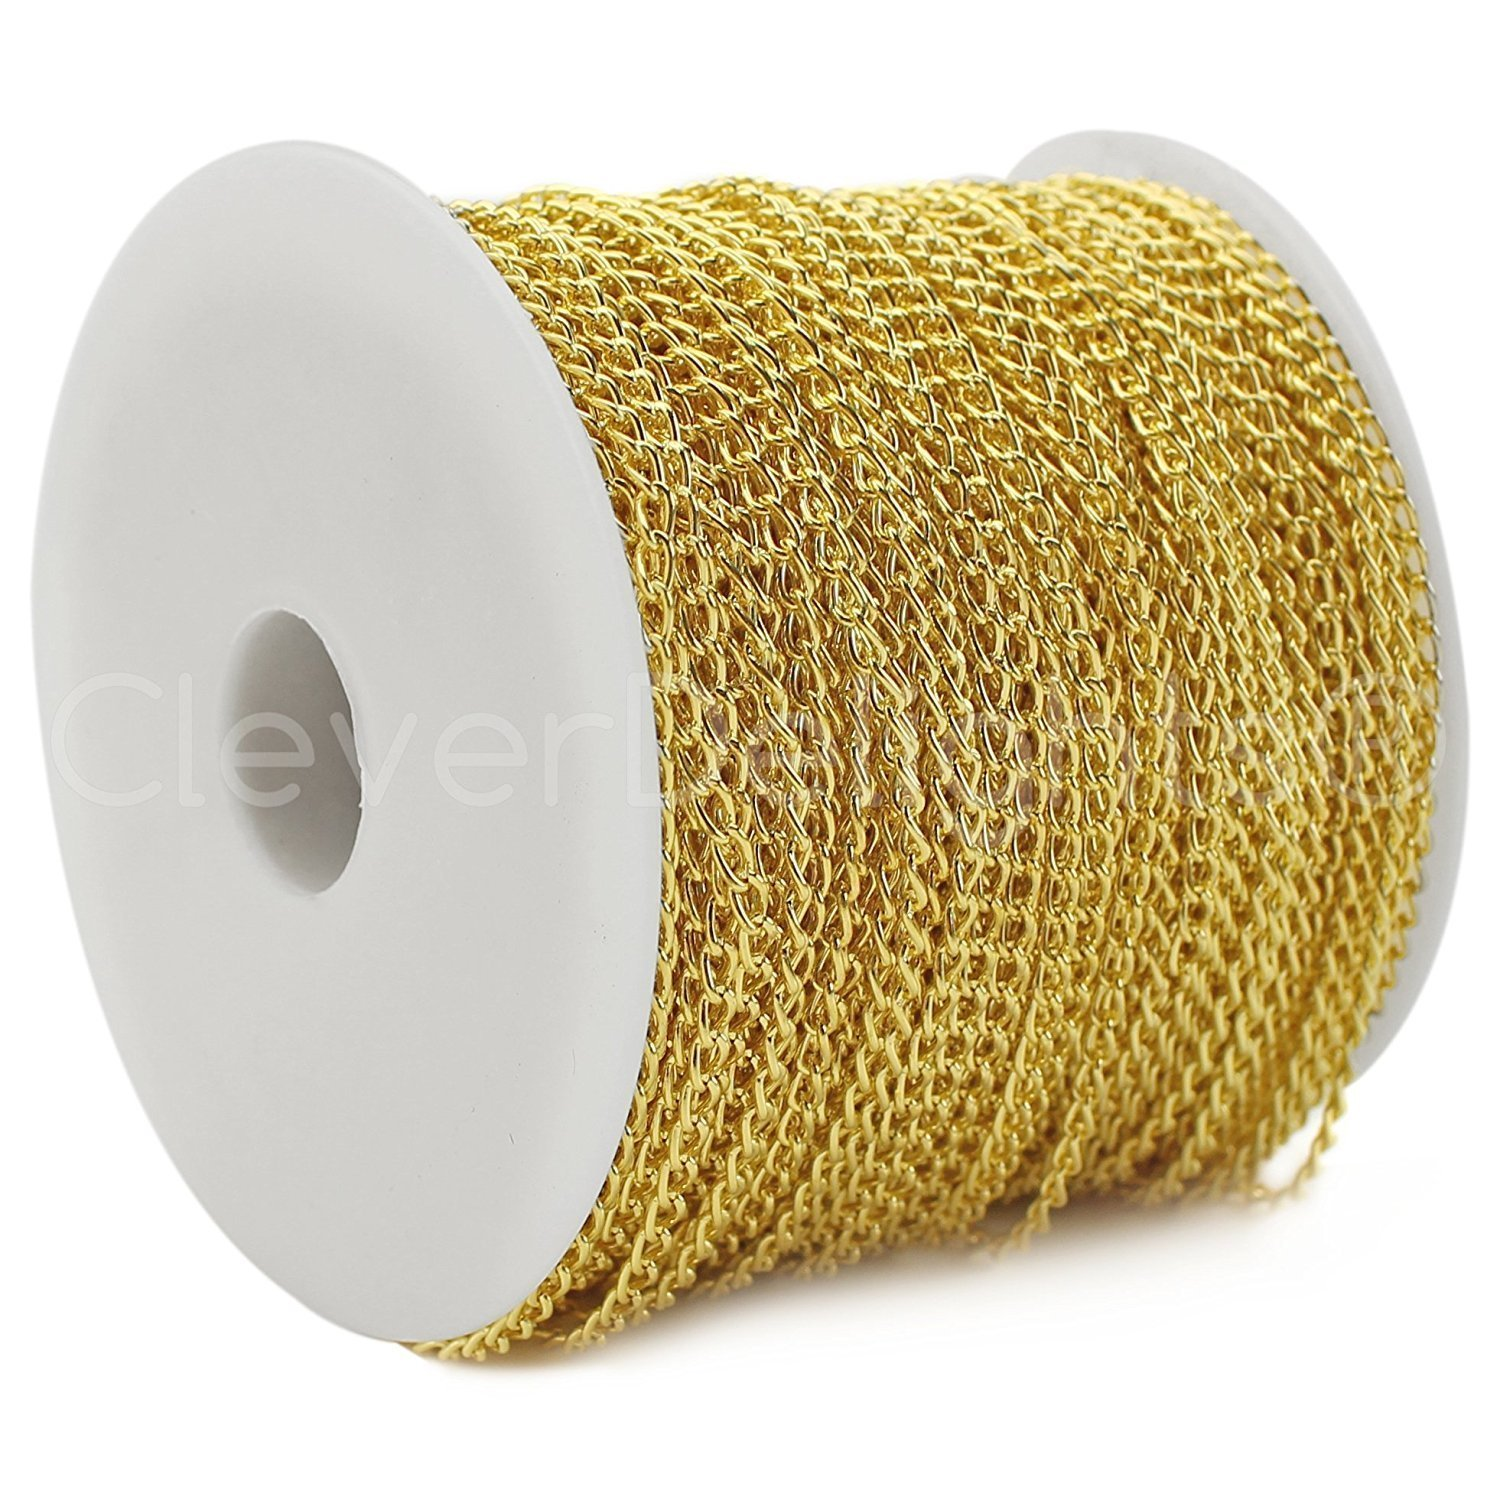 CleverDelights Curb Chain Spool - 3x5mm Link - Gold Color - 330 Feet